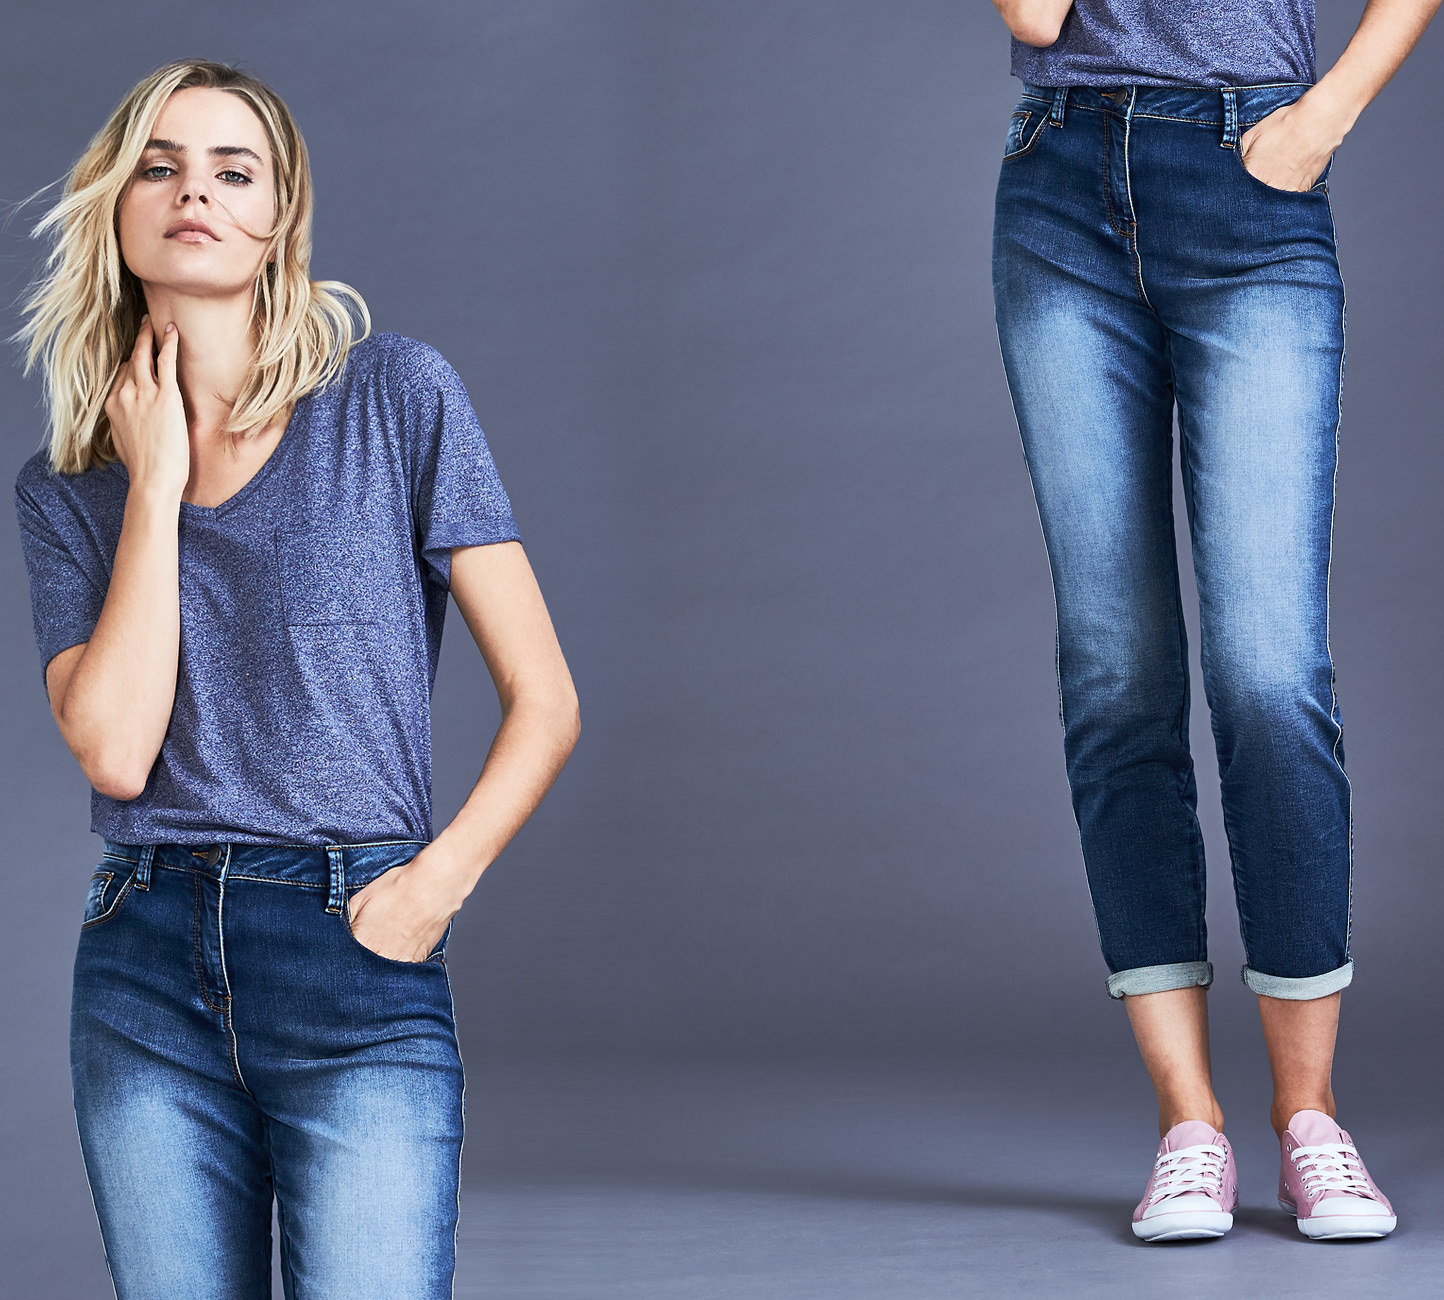 Women's Relaxed Skinny Fit Jeans - Shop Now